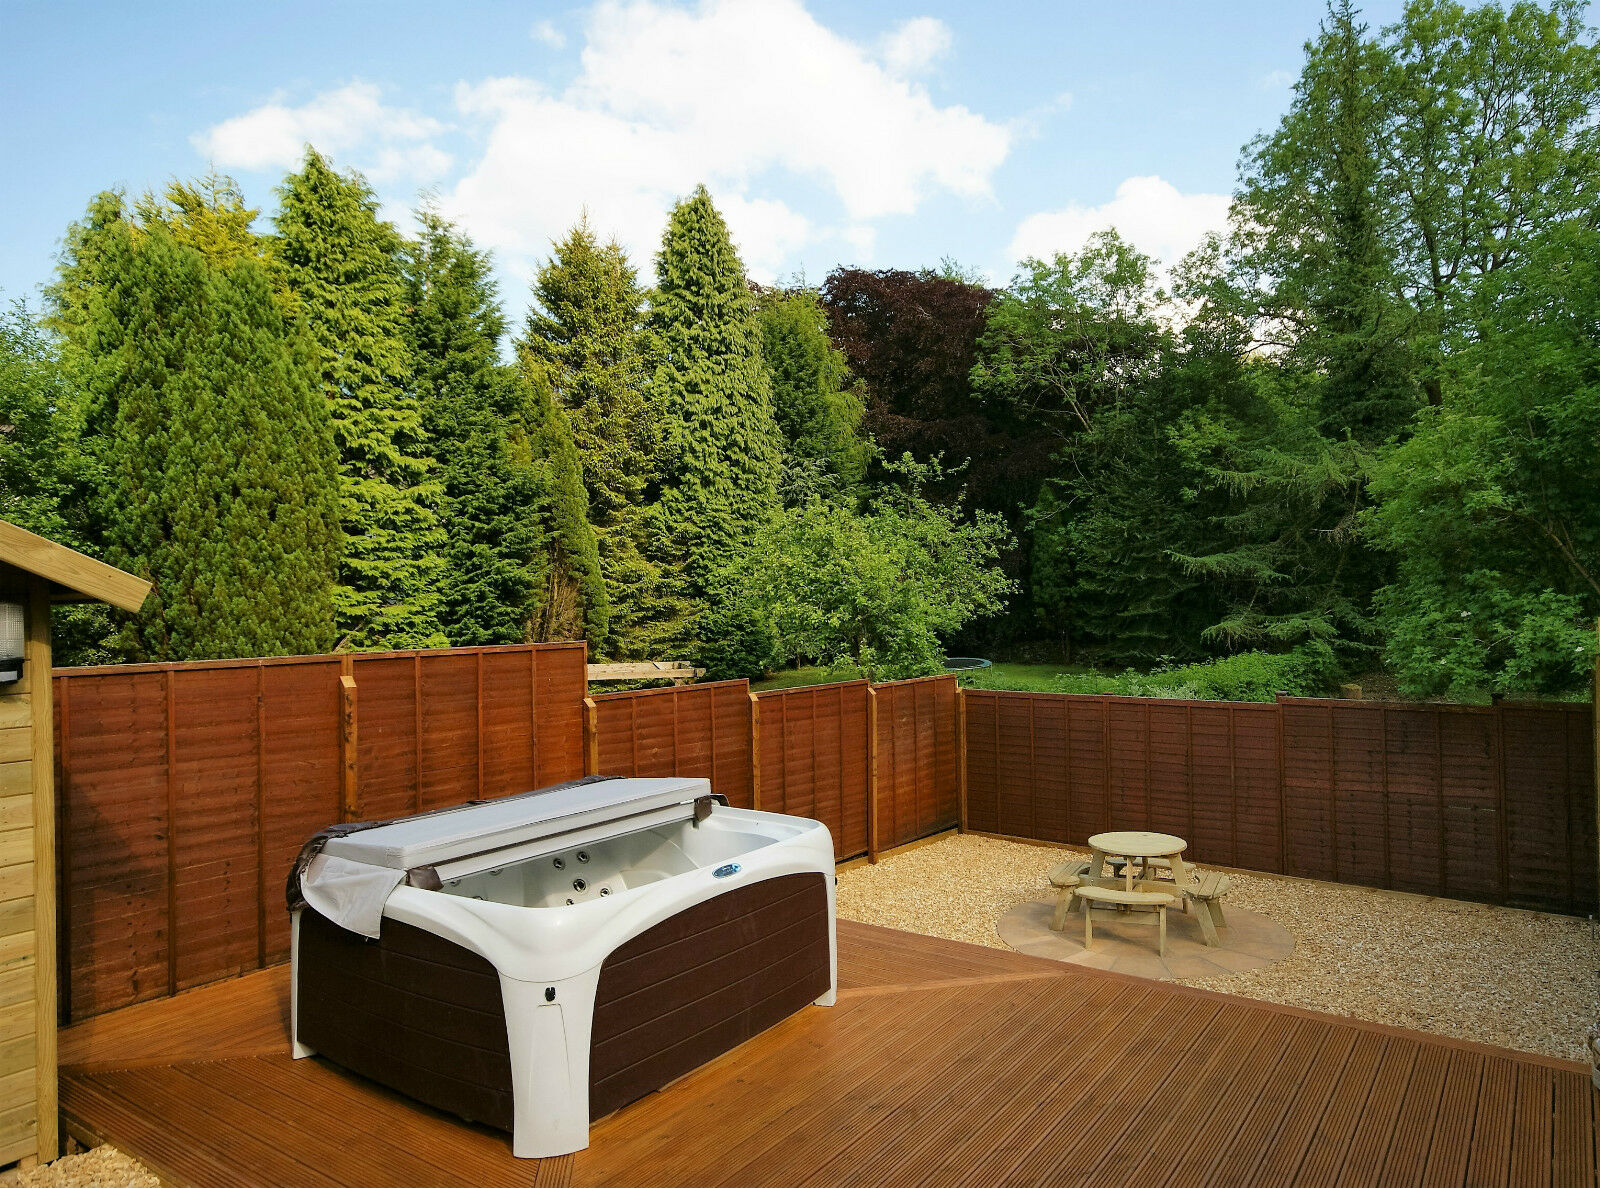 Luxury Lake District Holiday Cottage Apartment Hot Tub Garden Indoor Pool Picclick Uk